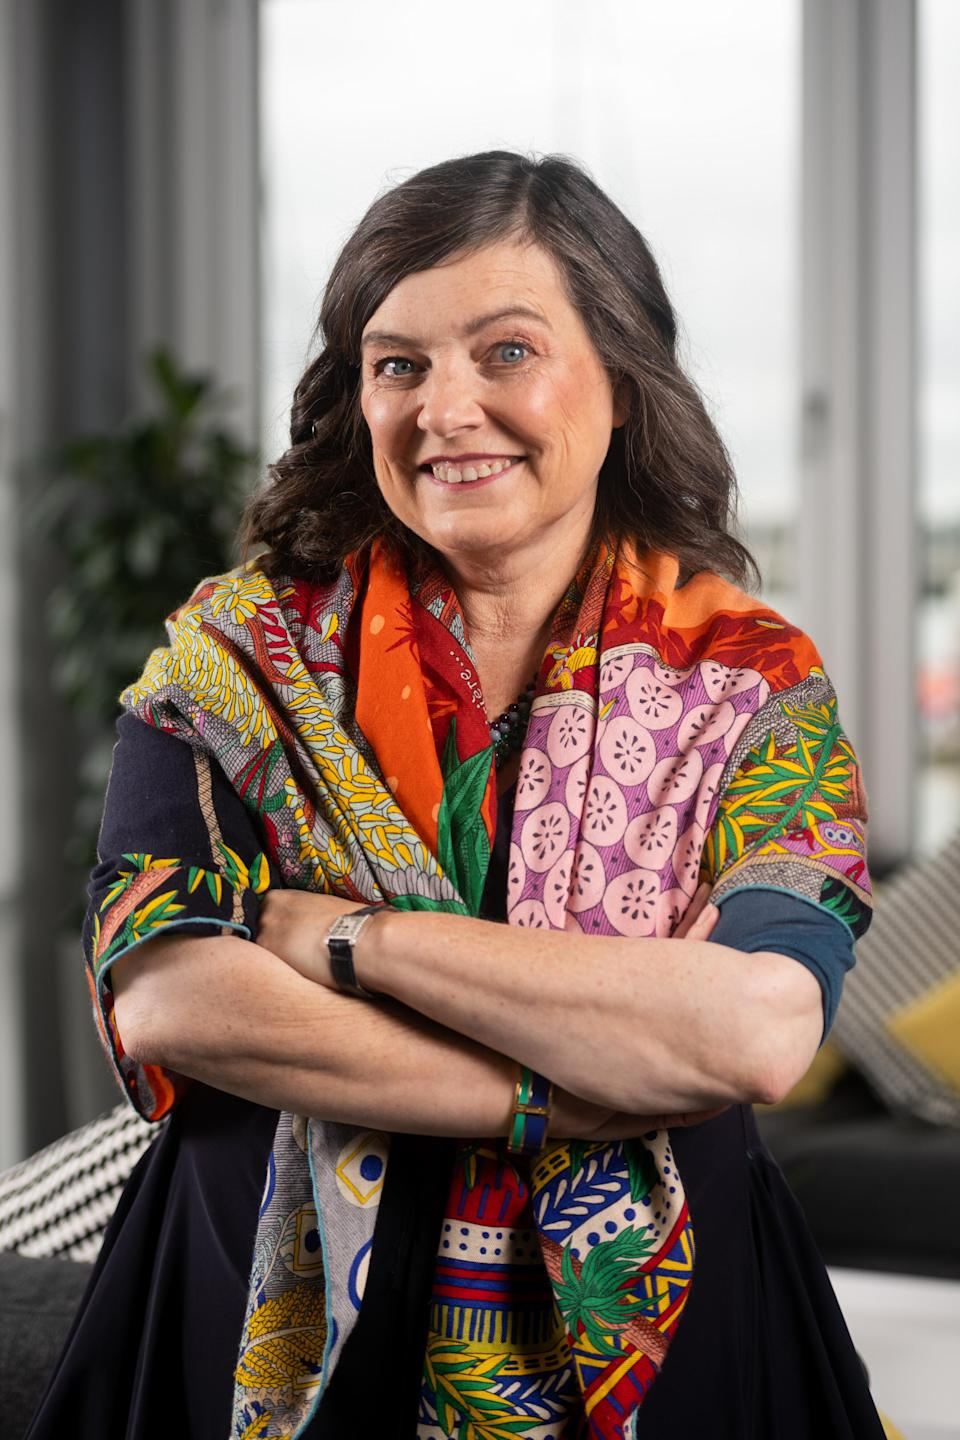 Starling boss Anne Boden founded the bank in 2014 (Starling/PA)